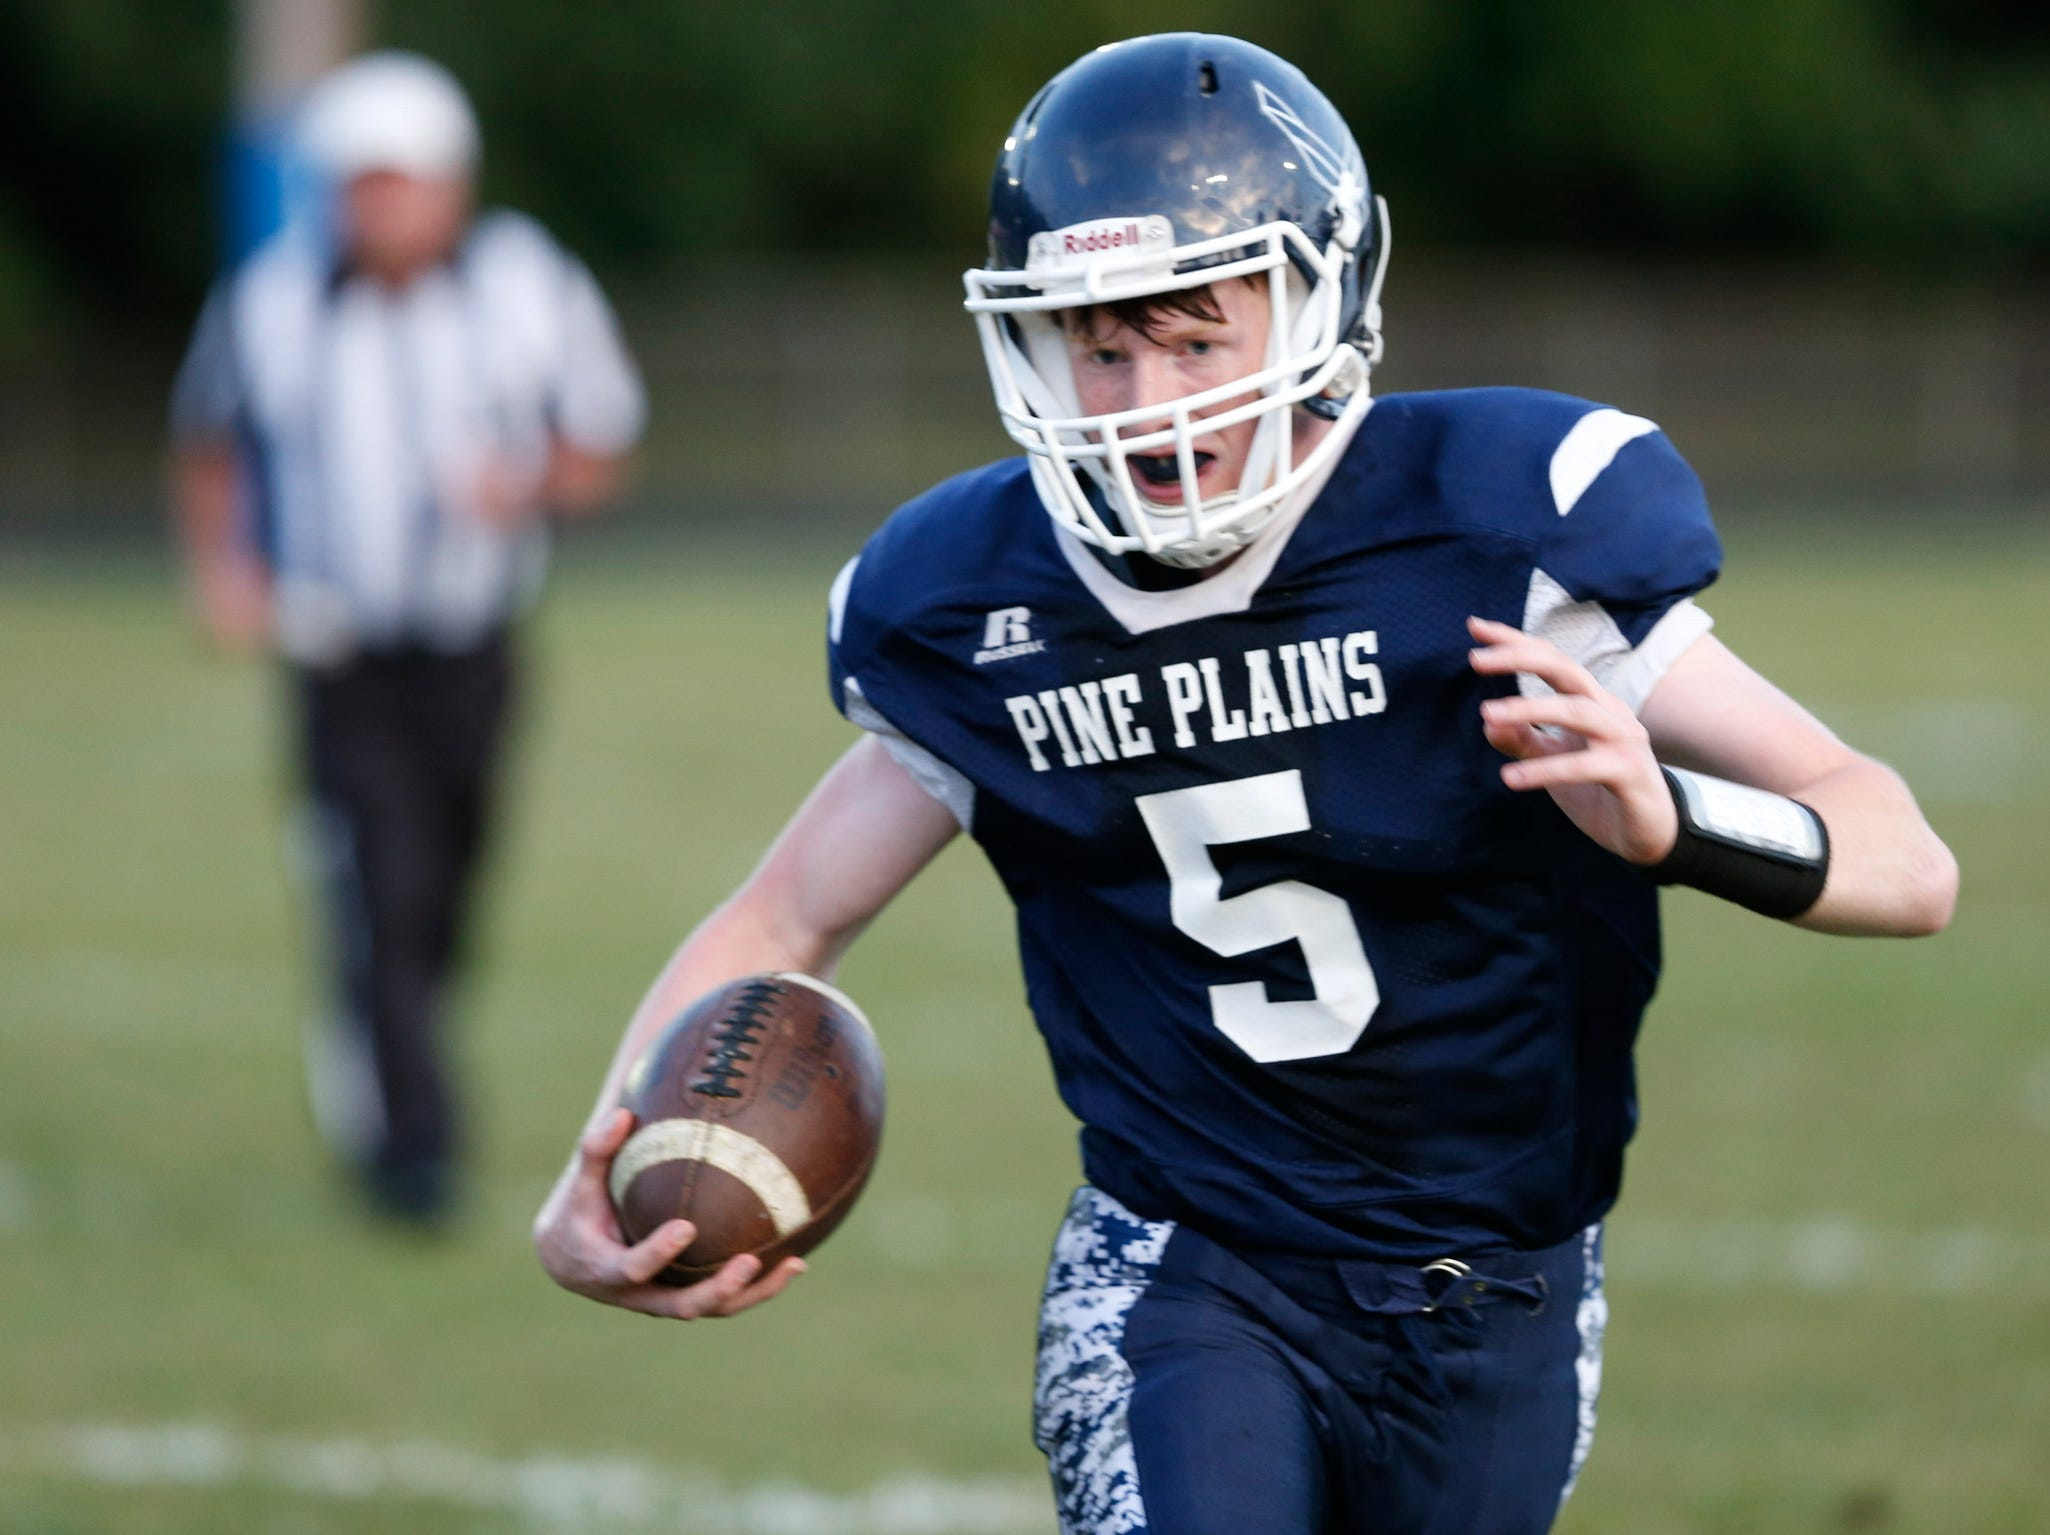 Pine Plains' Andrew Holsopple carries the ball for a gain in the first quarter of Friday's home game versus Roscoe on September 7, 2018.